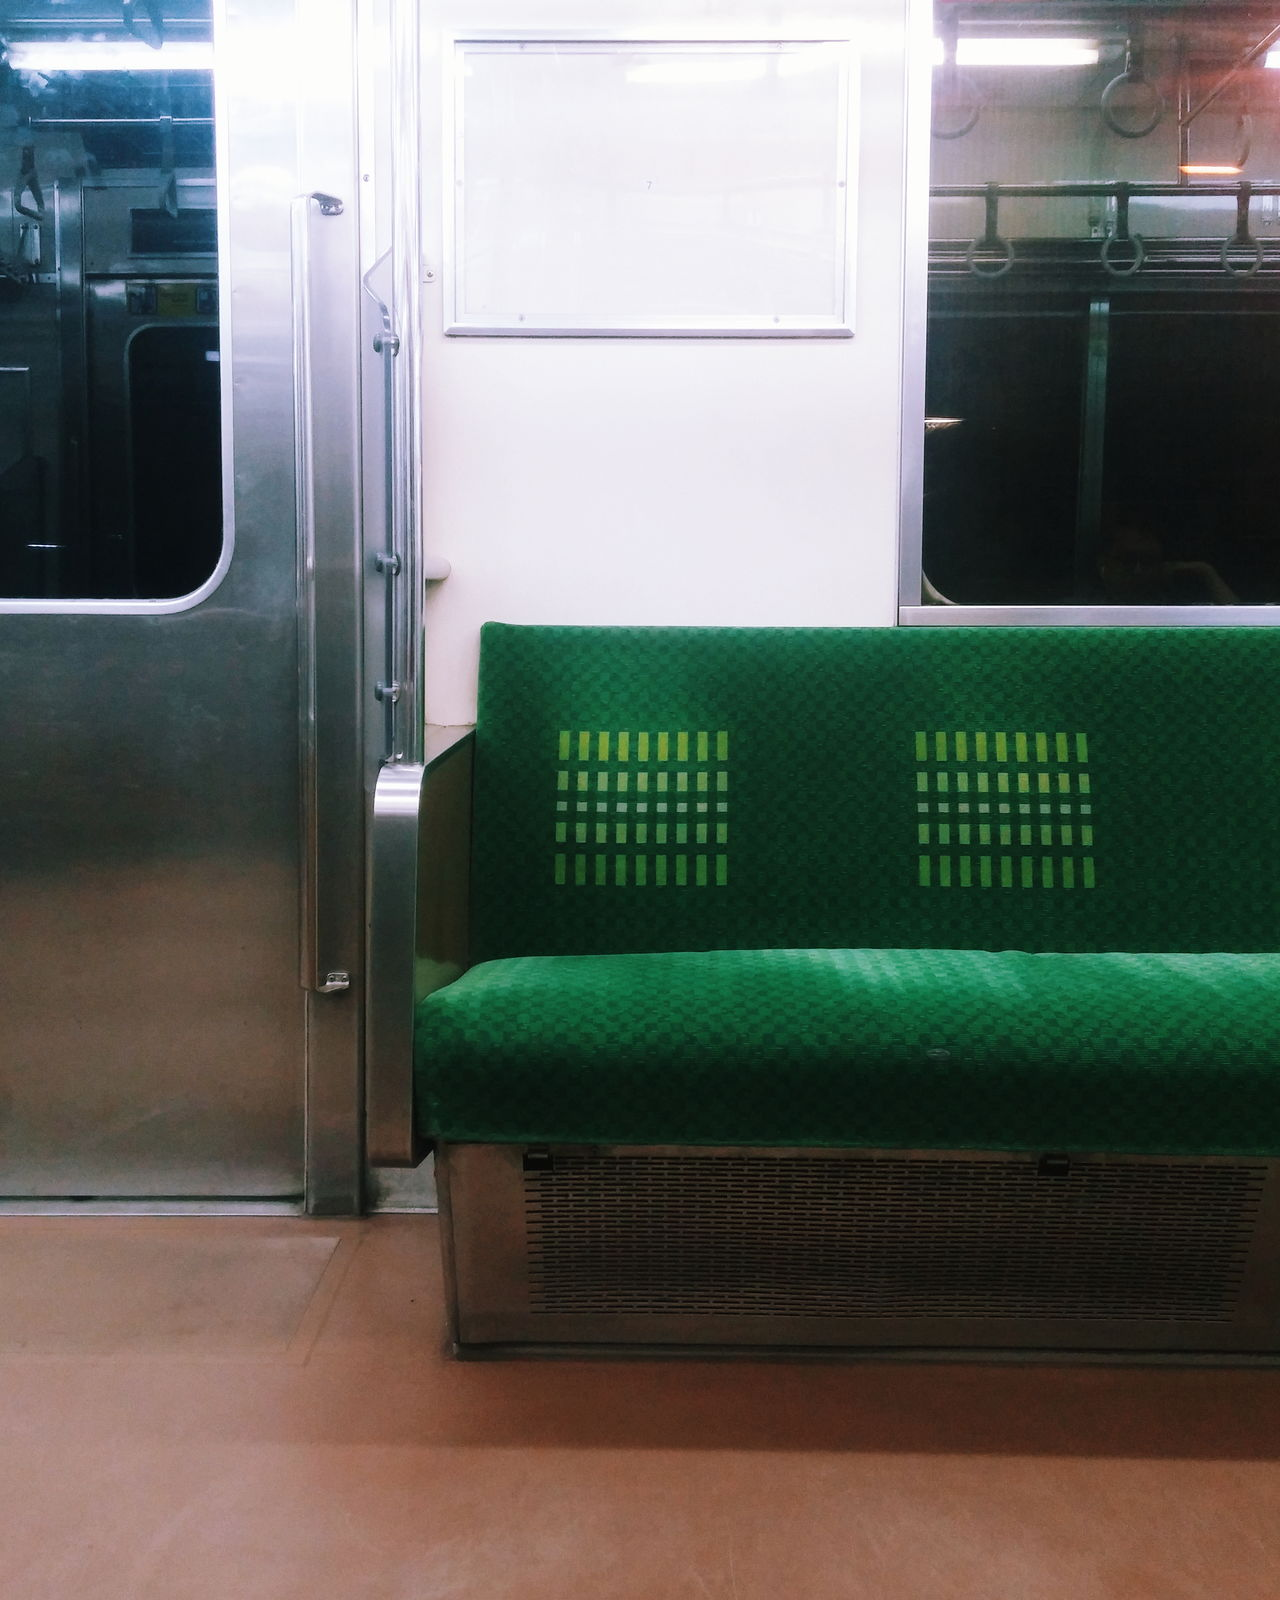 Green Color Indoors  Commuting On The Train Public Transportation Empty Seats